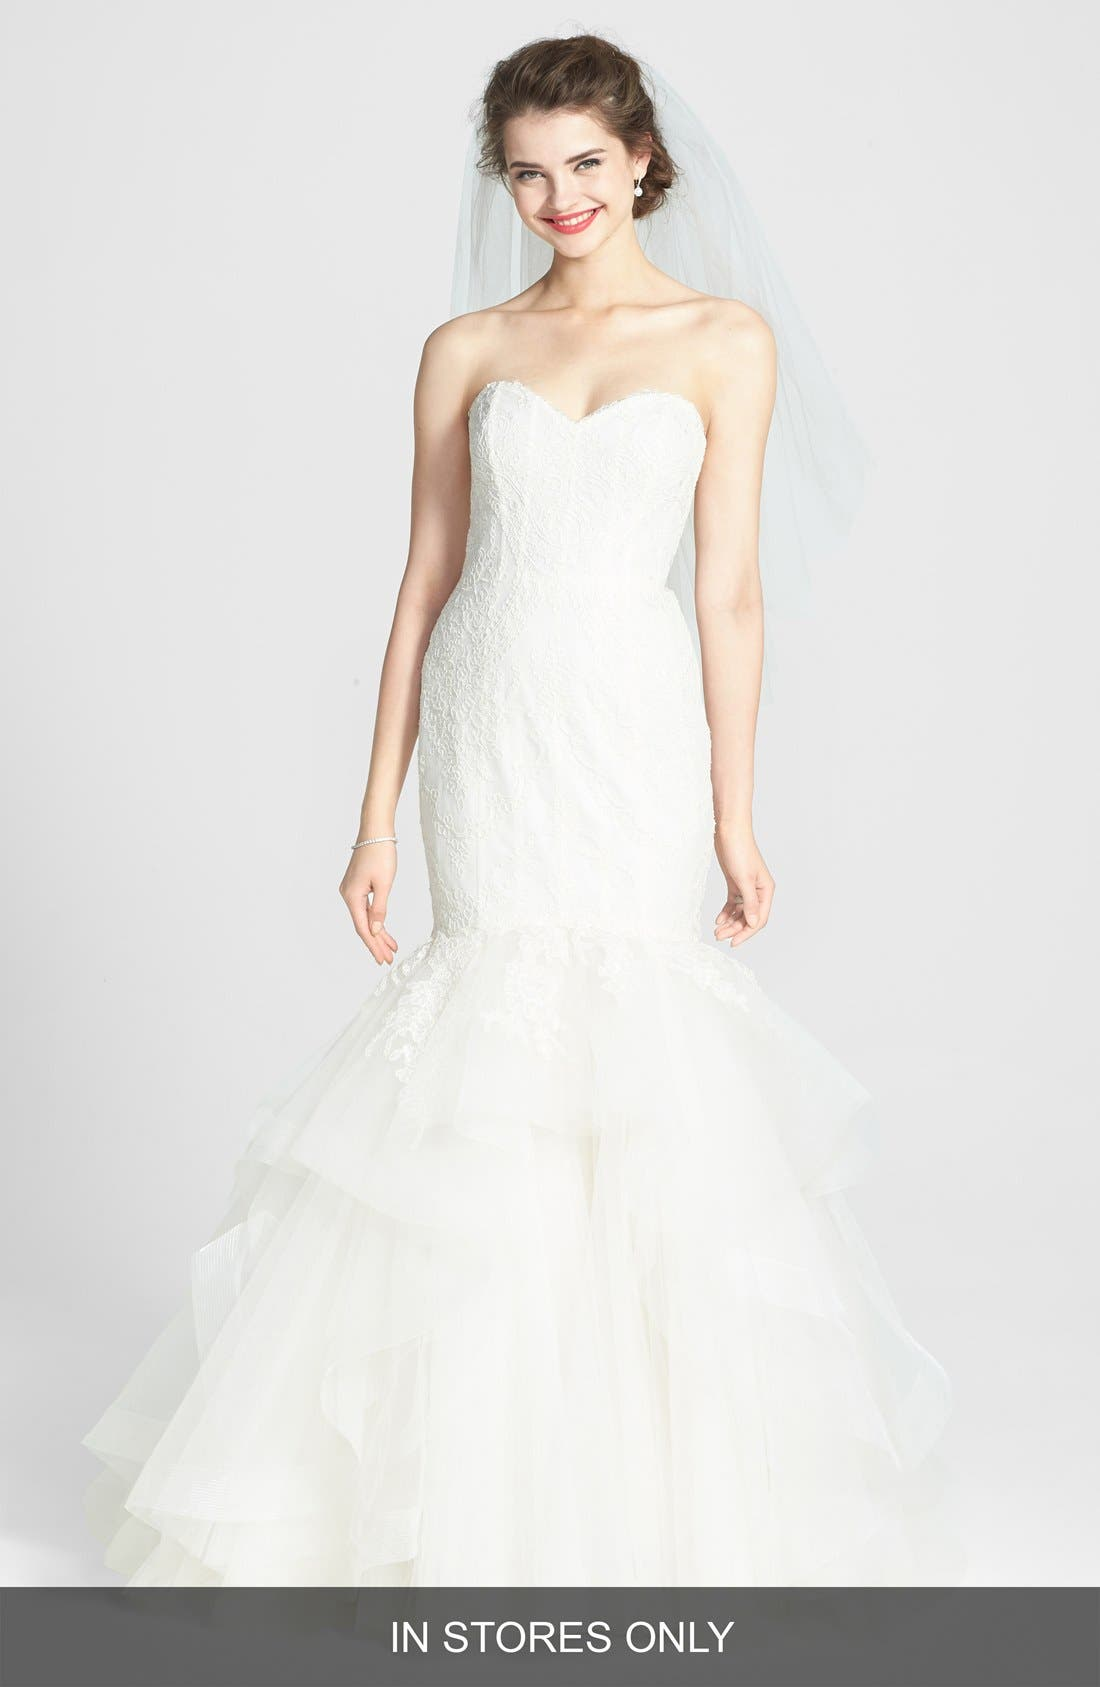 AMSALE Carson French Lace & Tulle Mermaid Wedding Dress, Main, color, 900